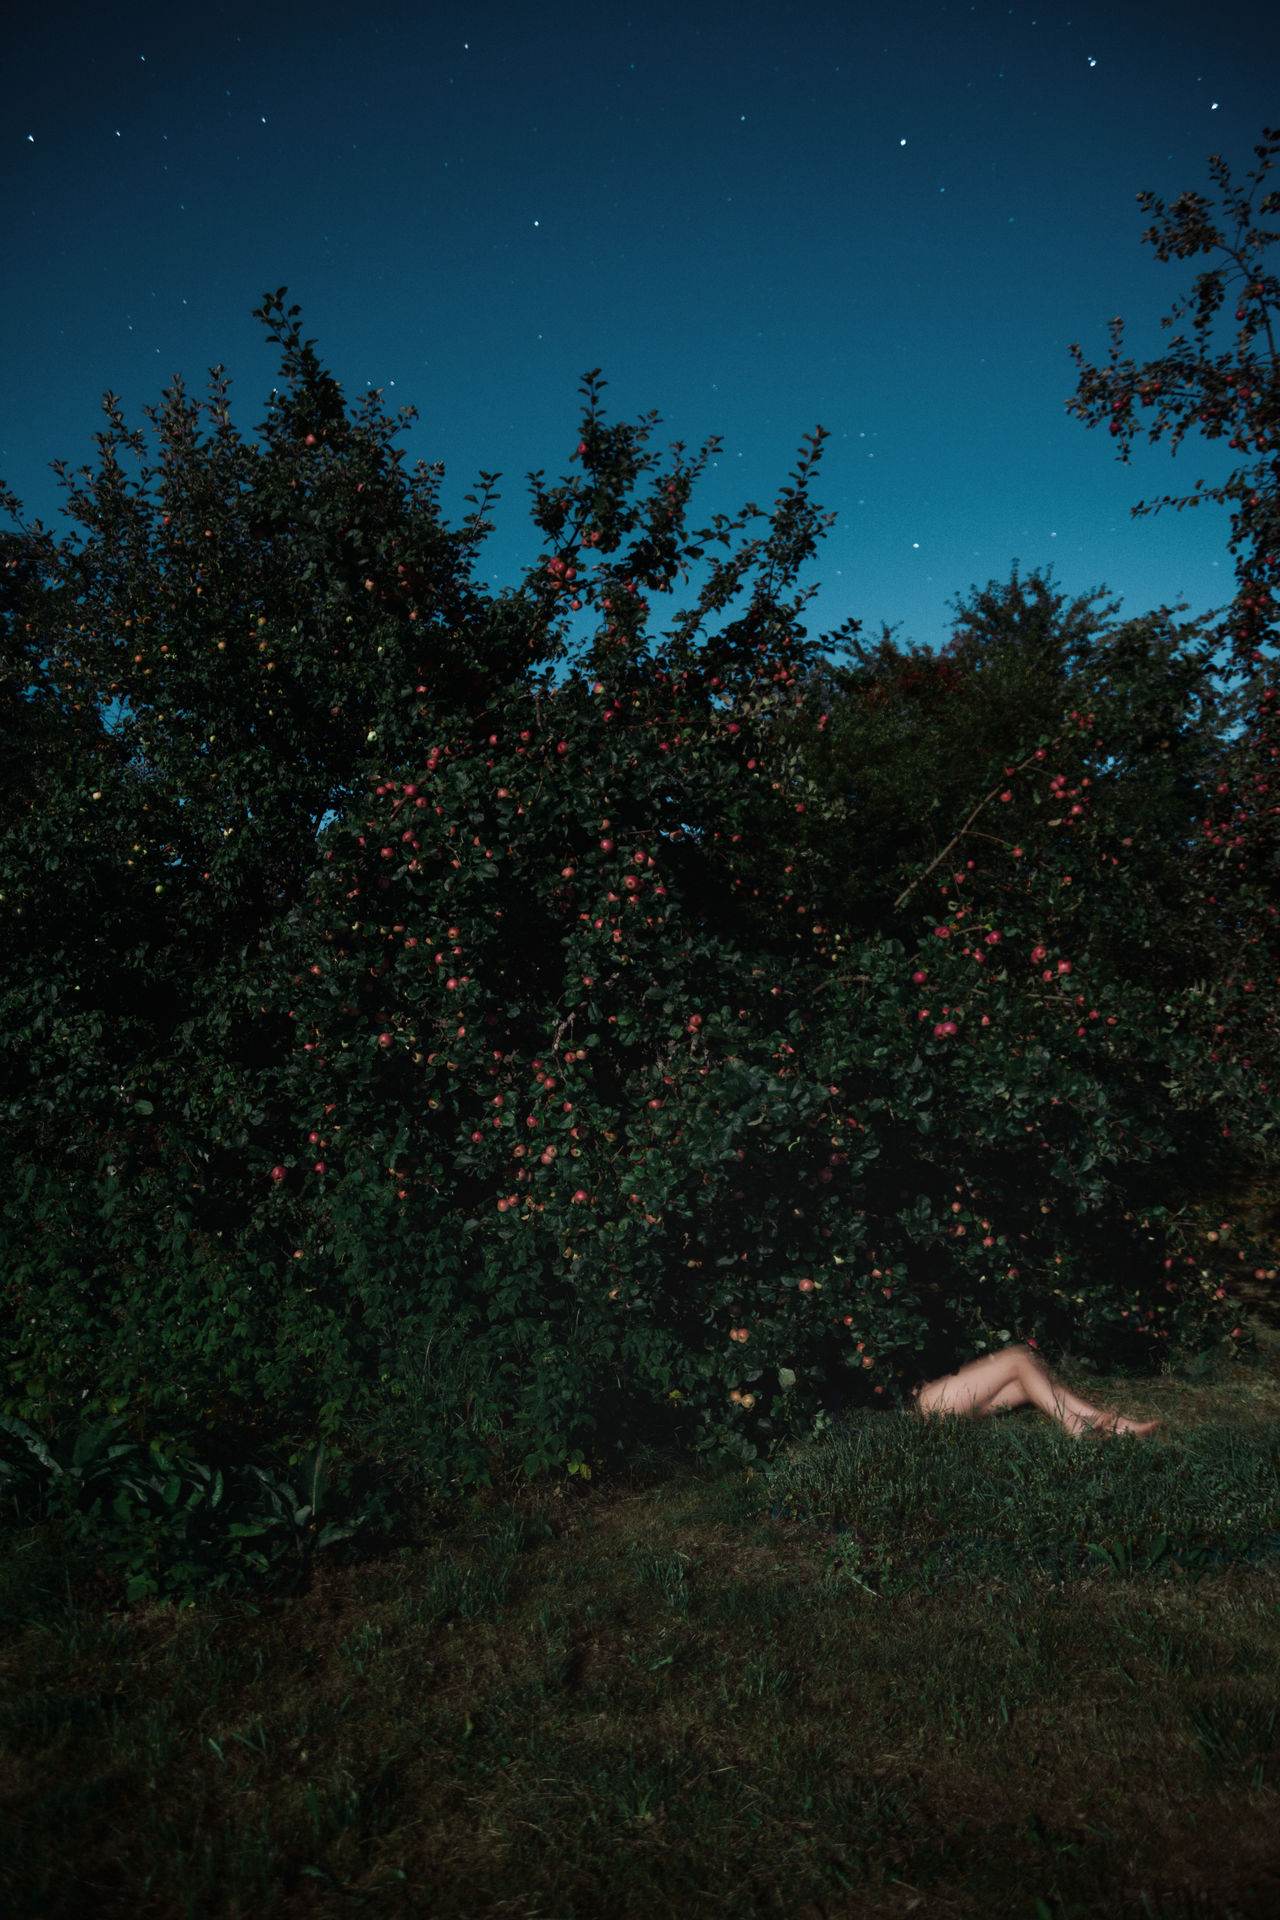 The Cider House Legs Apple Tree Apples Garden Grass Green Legs Linas Was Here Long Exposure Nature Nightscape Starry Sky Stars Summer Night